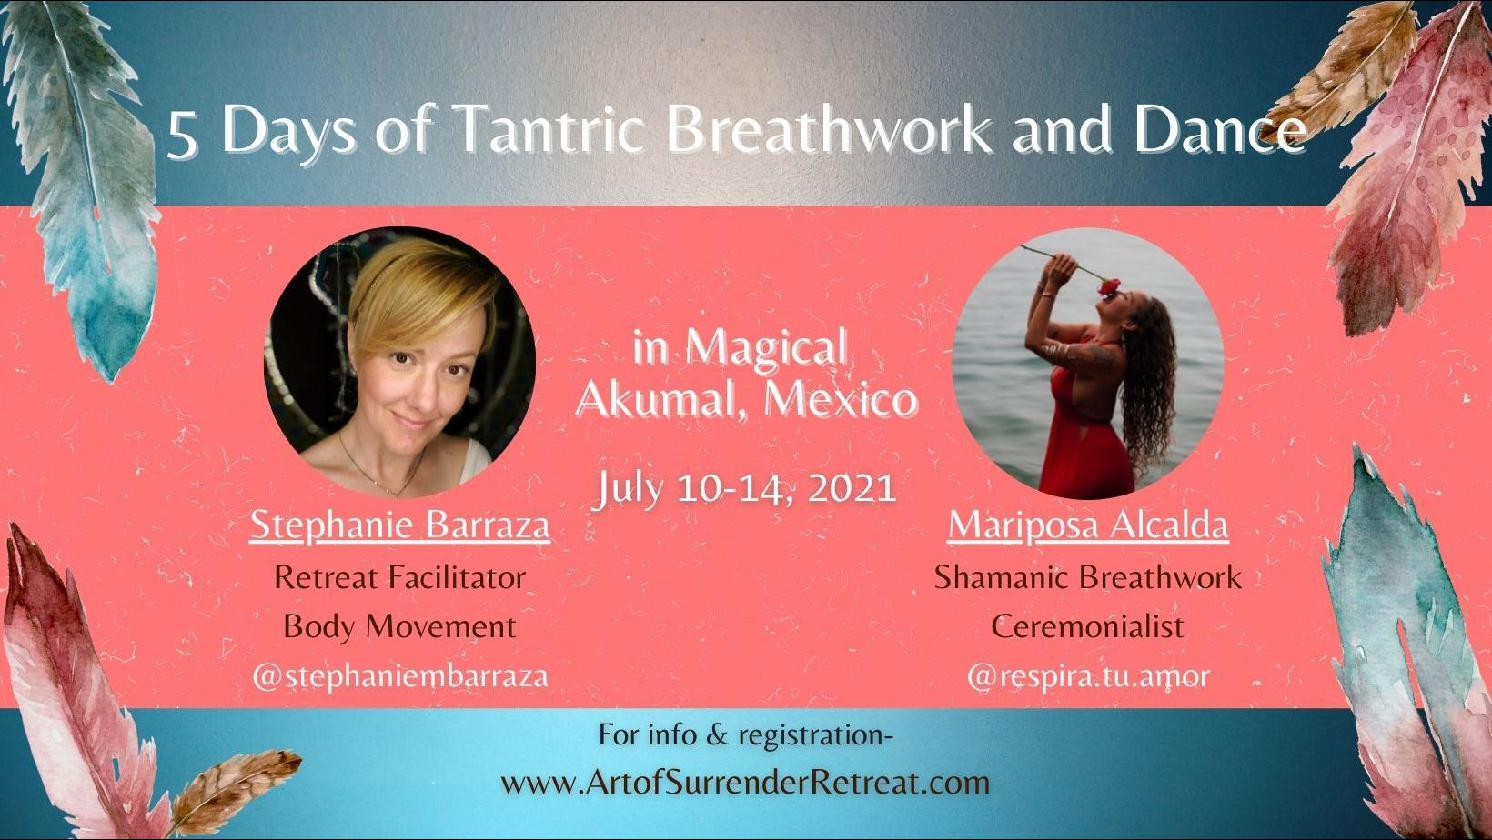 5 Days of Tantric Breathwork and Dance in Magical Akumal, Mexico